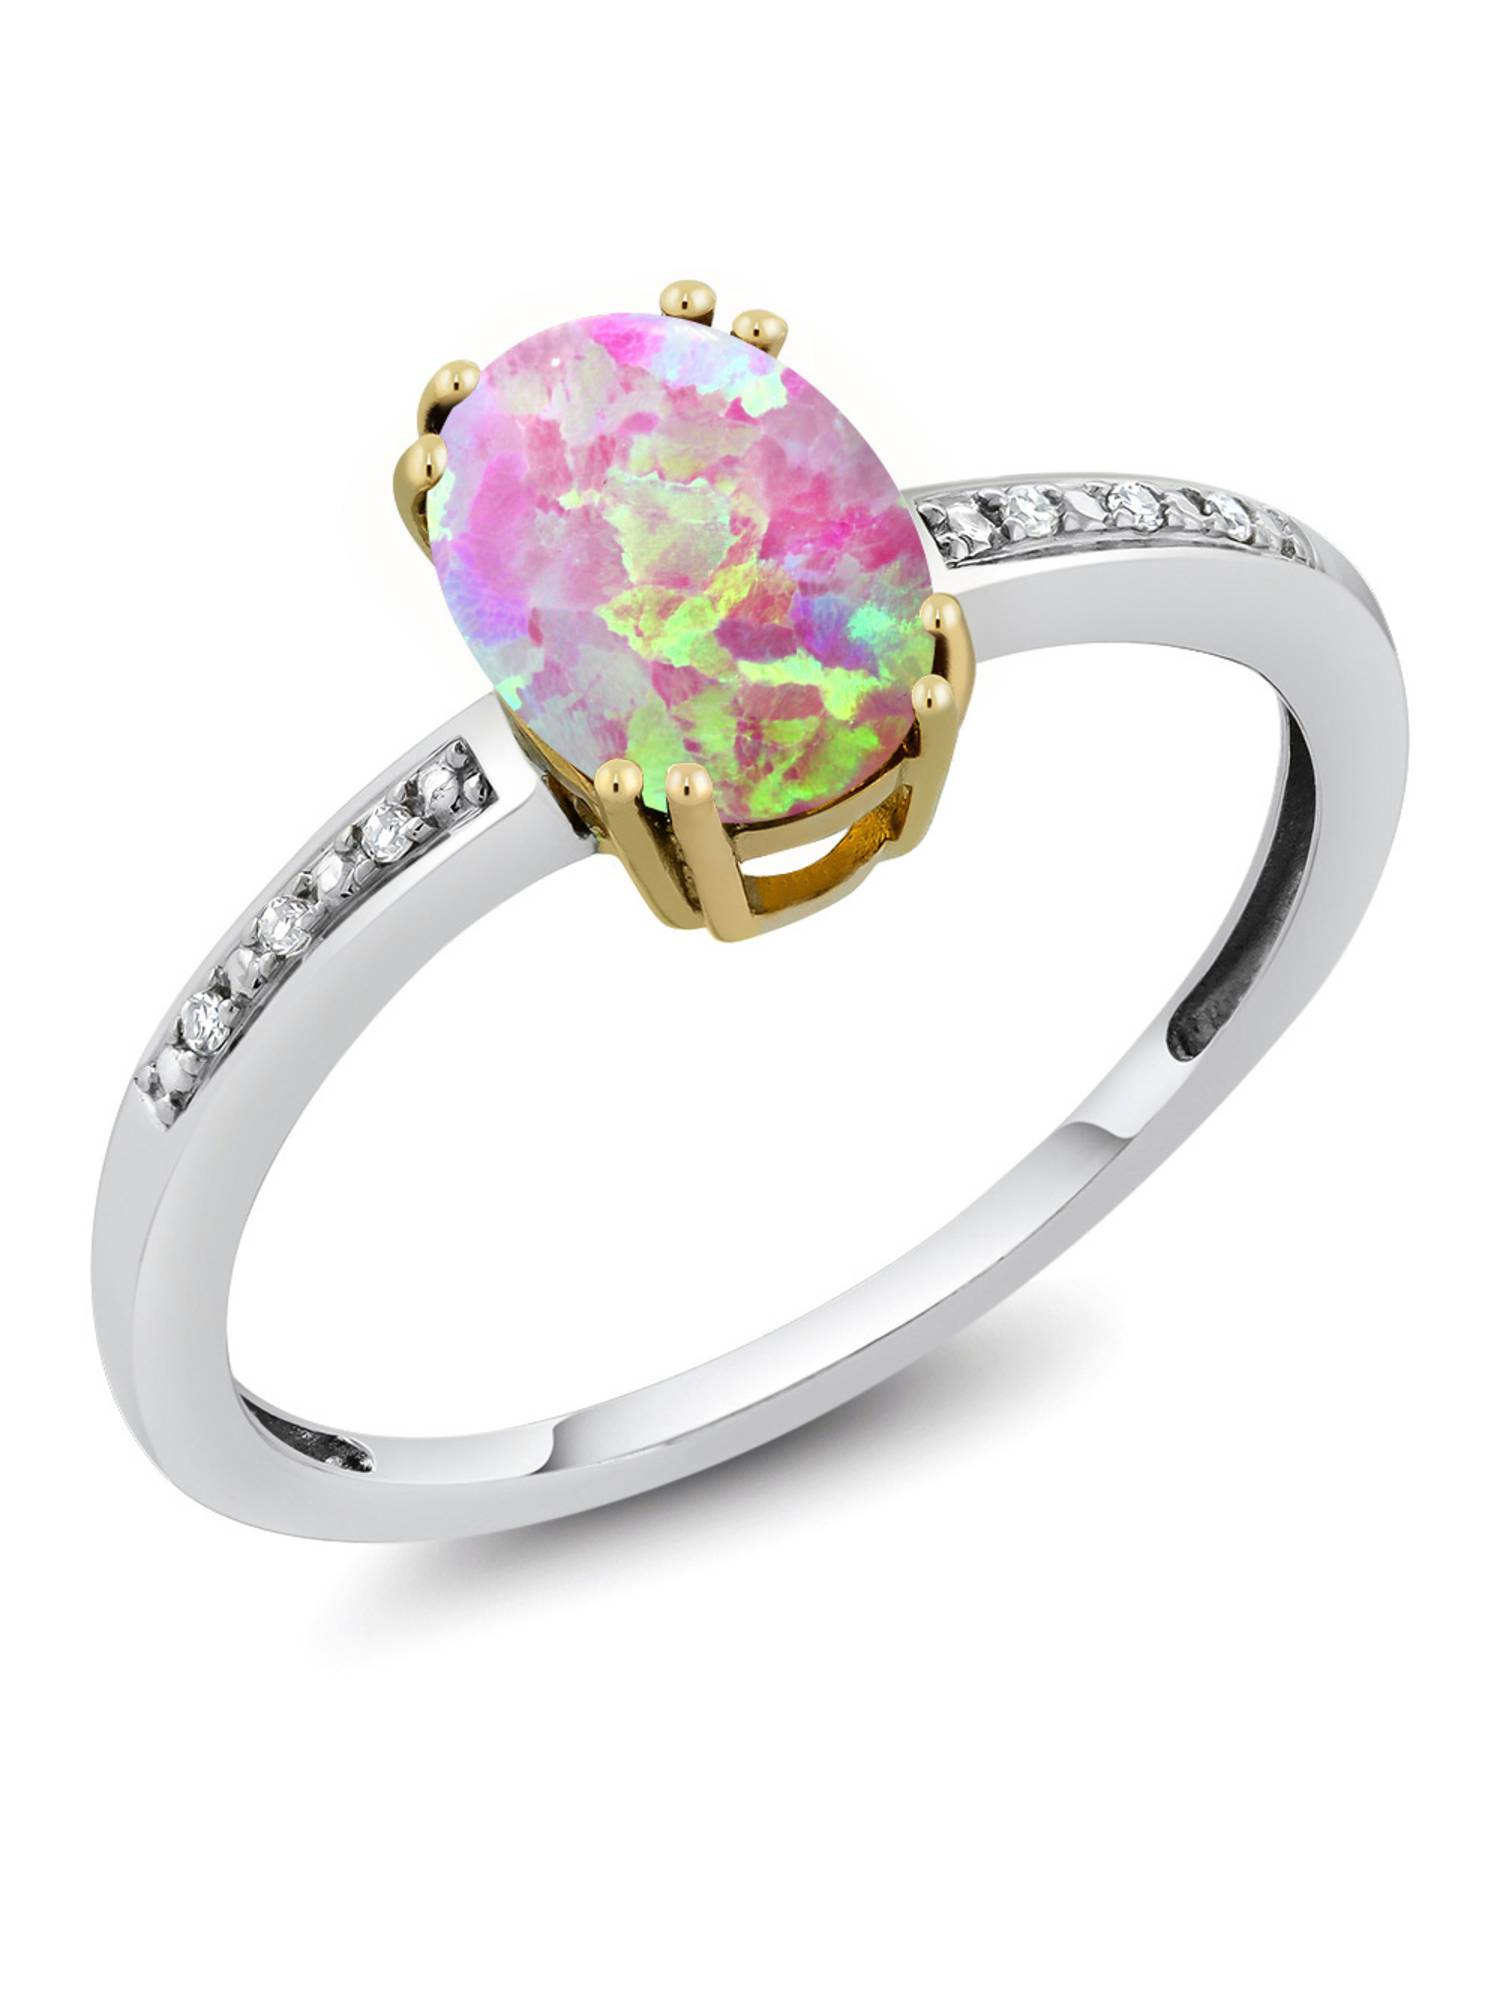 10K Two Tone Gold Women's 1.05 Ct Oval Cabochon Pink Simulated Opal Diamond Ring by